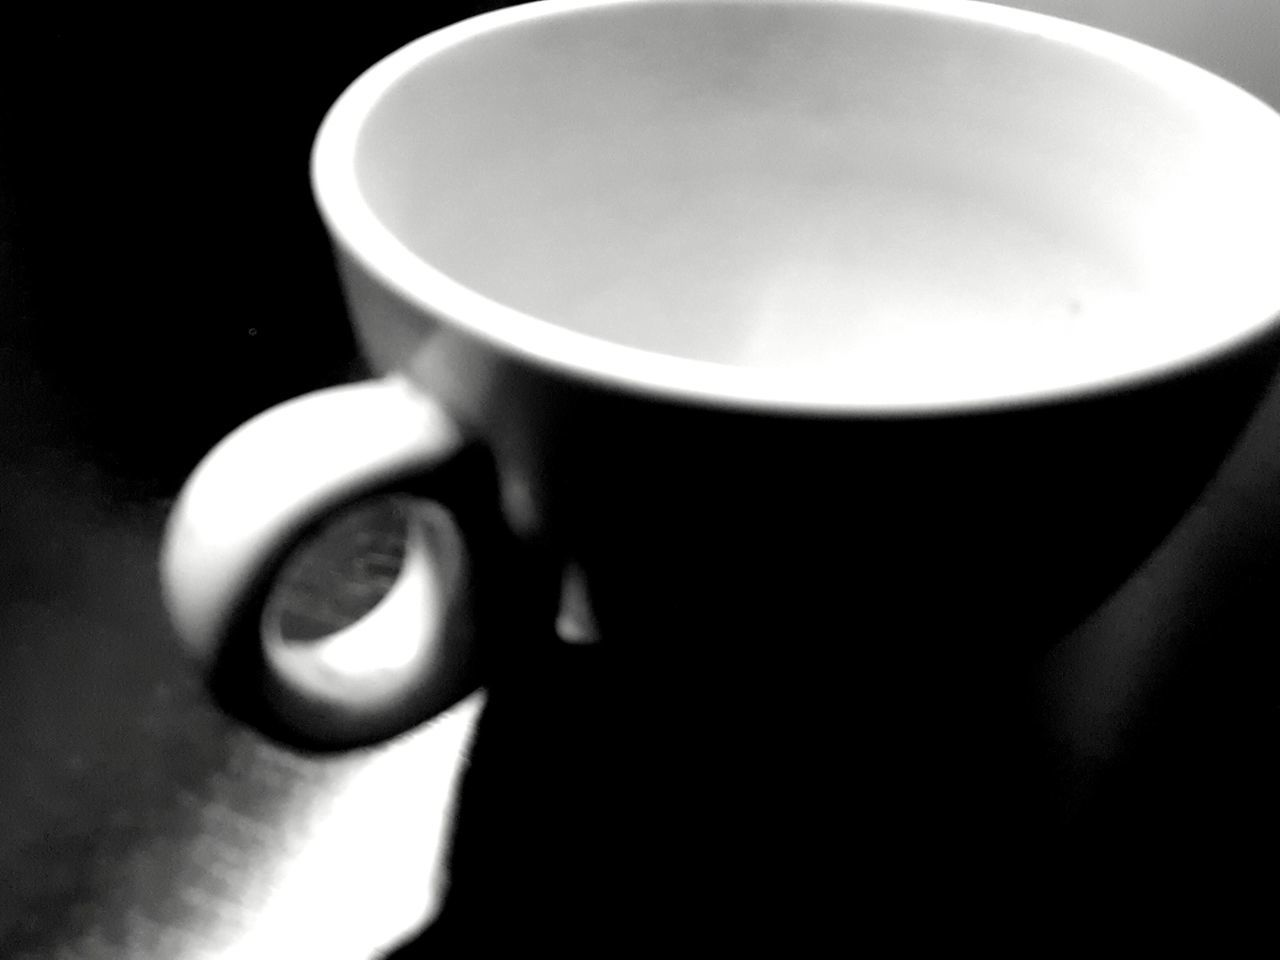 coffee cup, drink, food and drink, coffee - drink, cup, table, refreshment, no people, indoors, close-up, saucer, freshness, frothy drink, black background, healthy eating, cappuccino, mocha, froth art, day